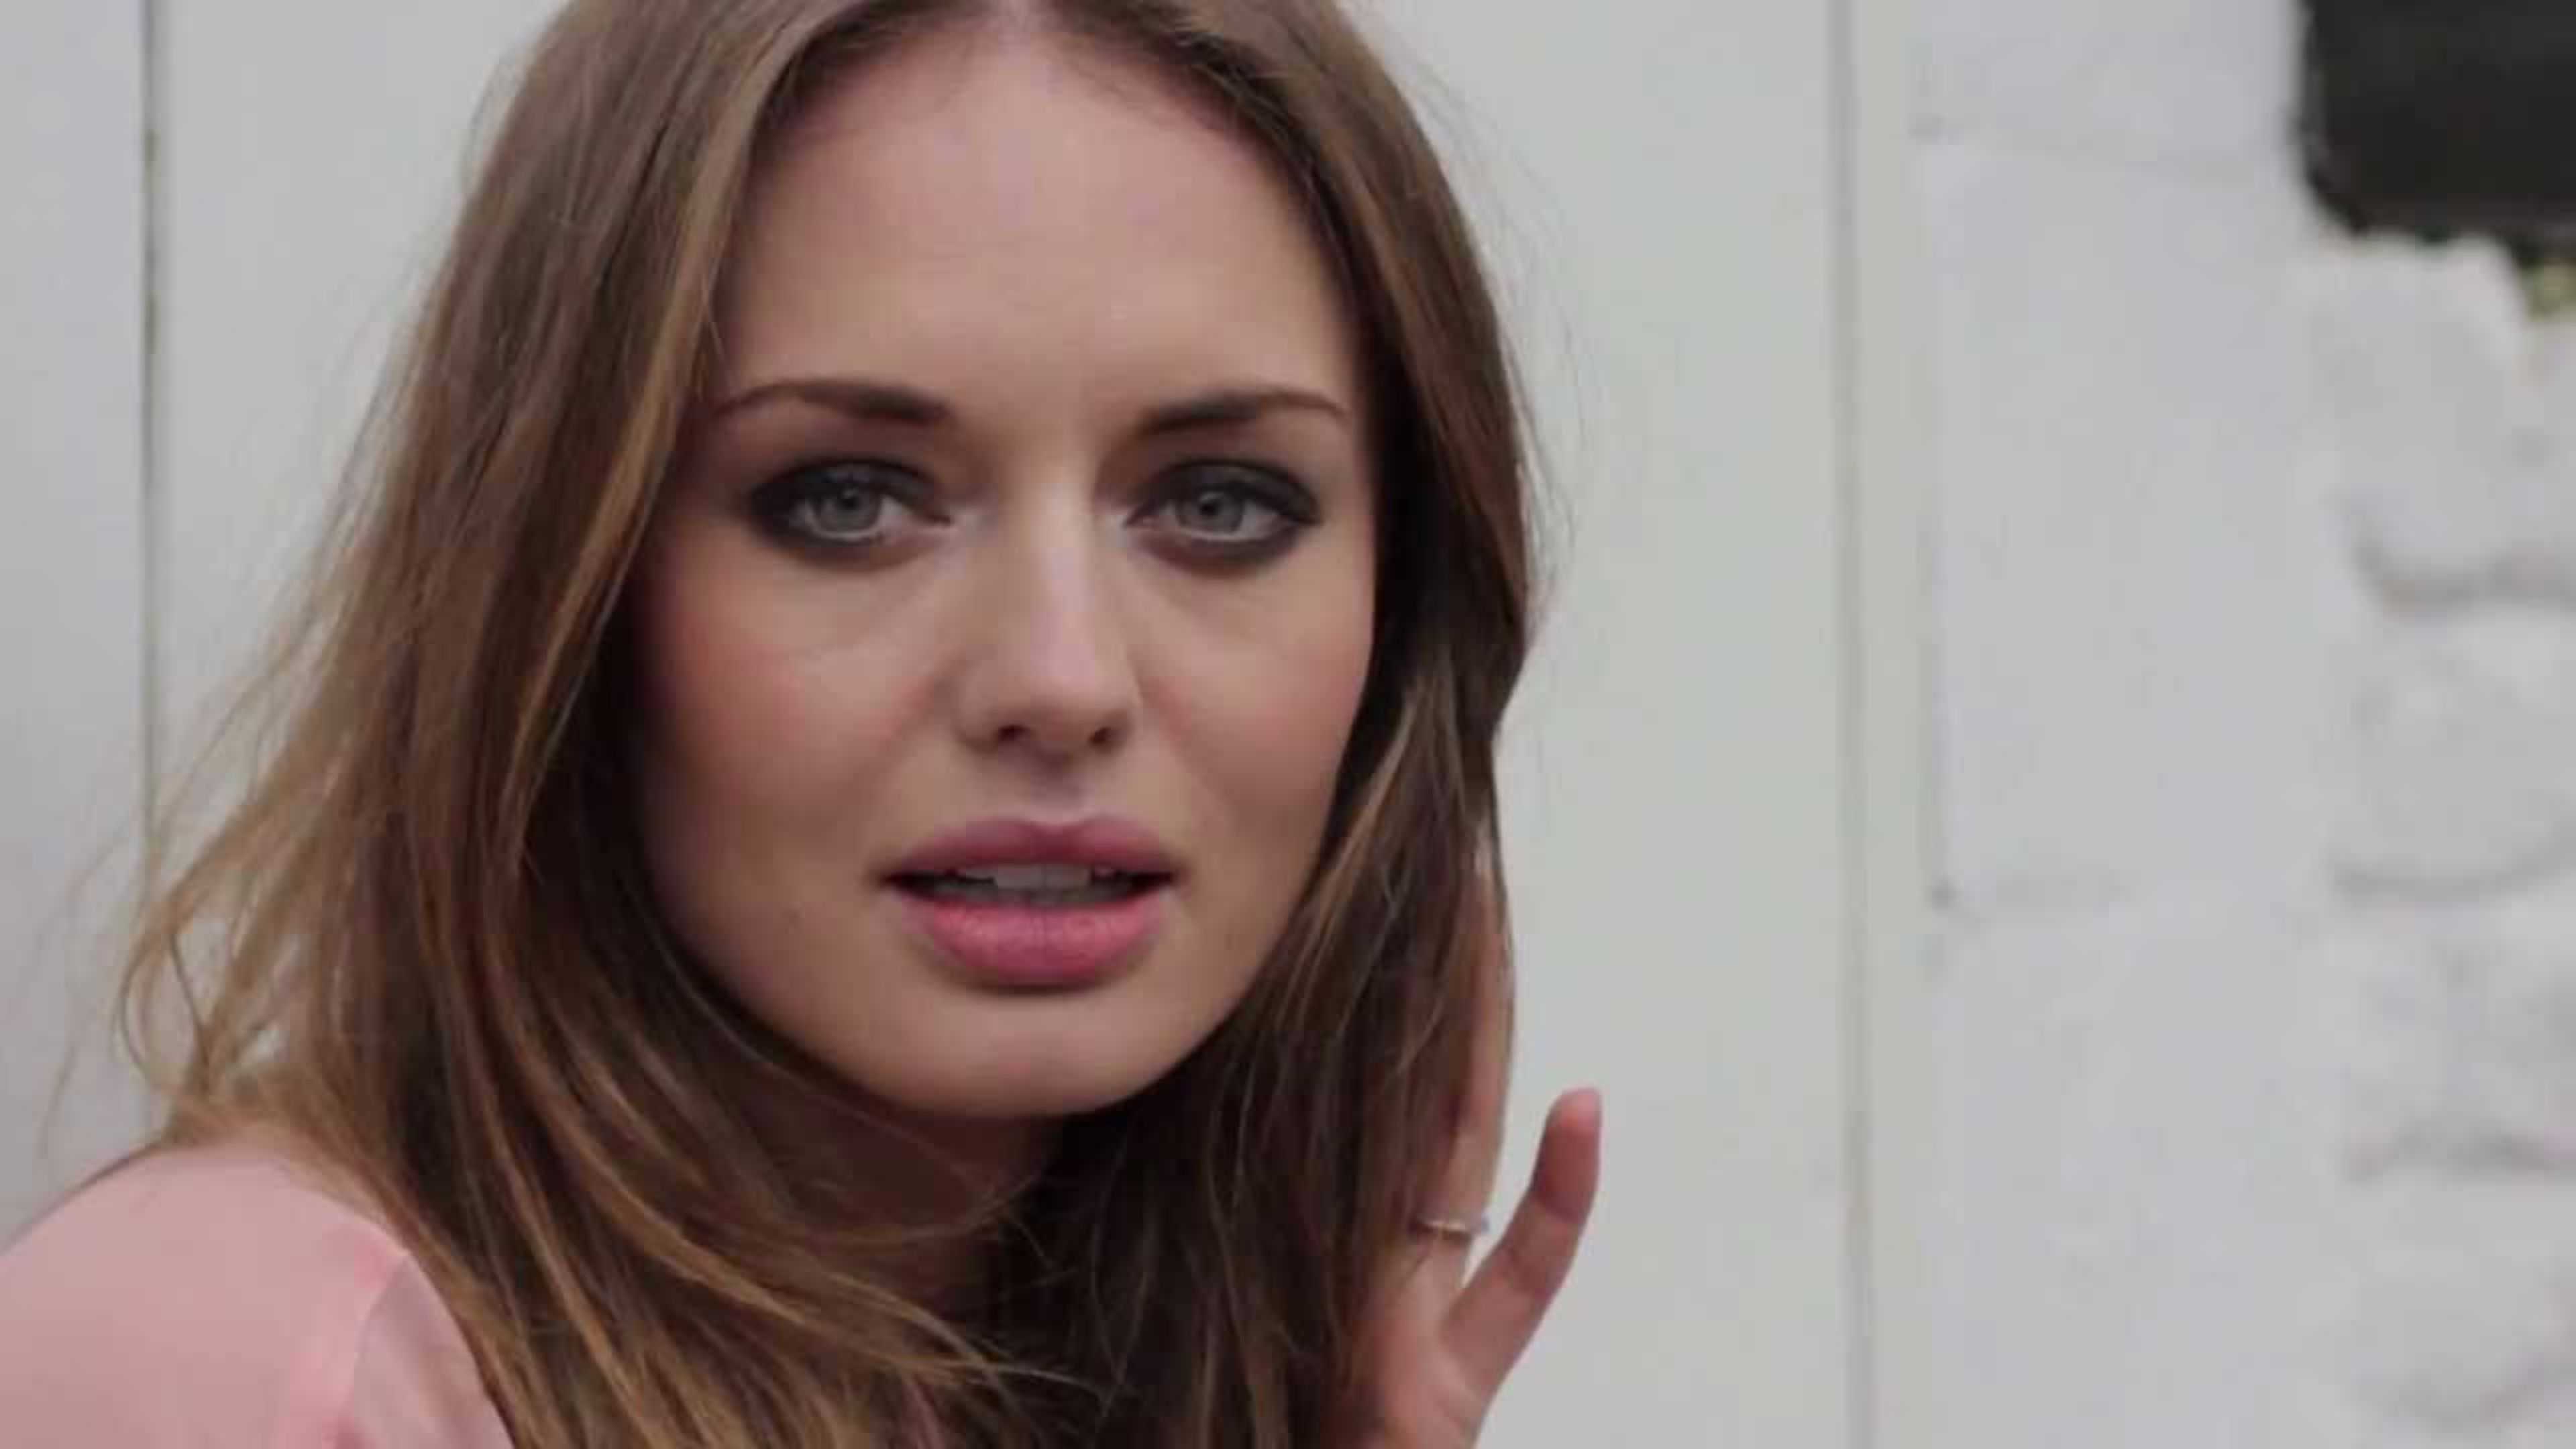 Laura Haddock Wallpapers Images Photos Pictures Backgrounds 3840x2160